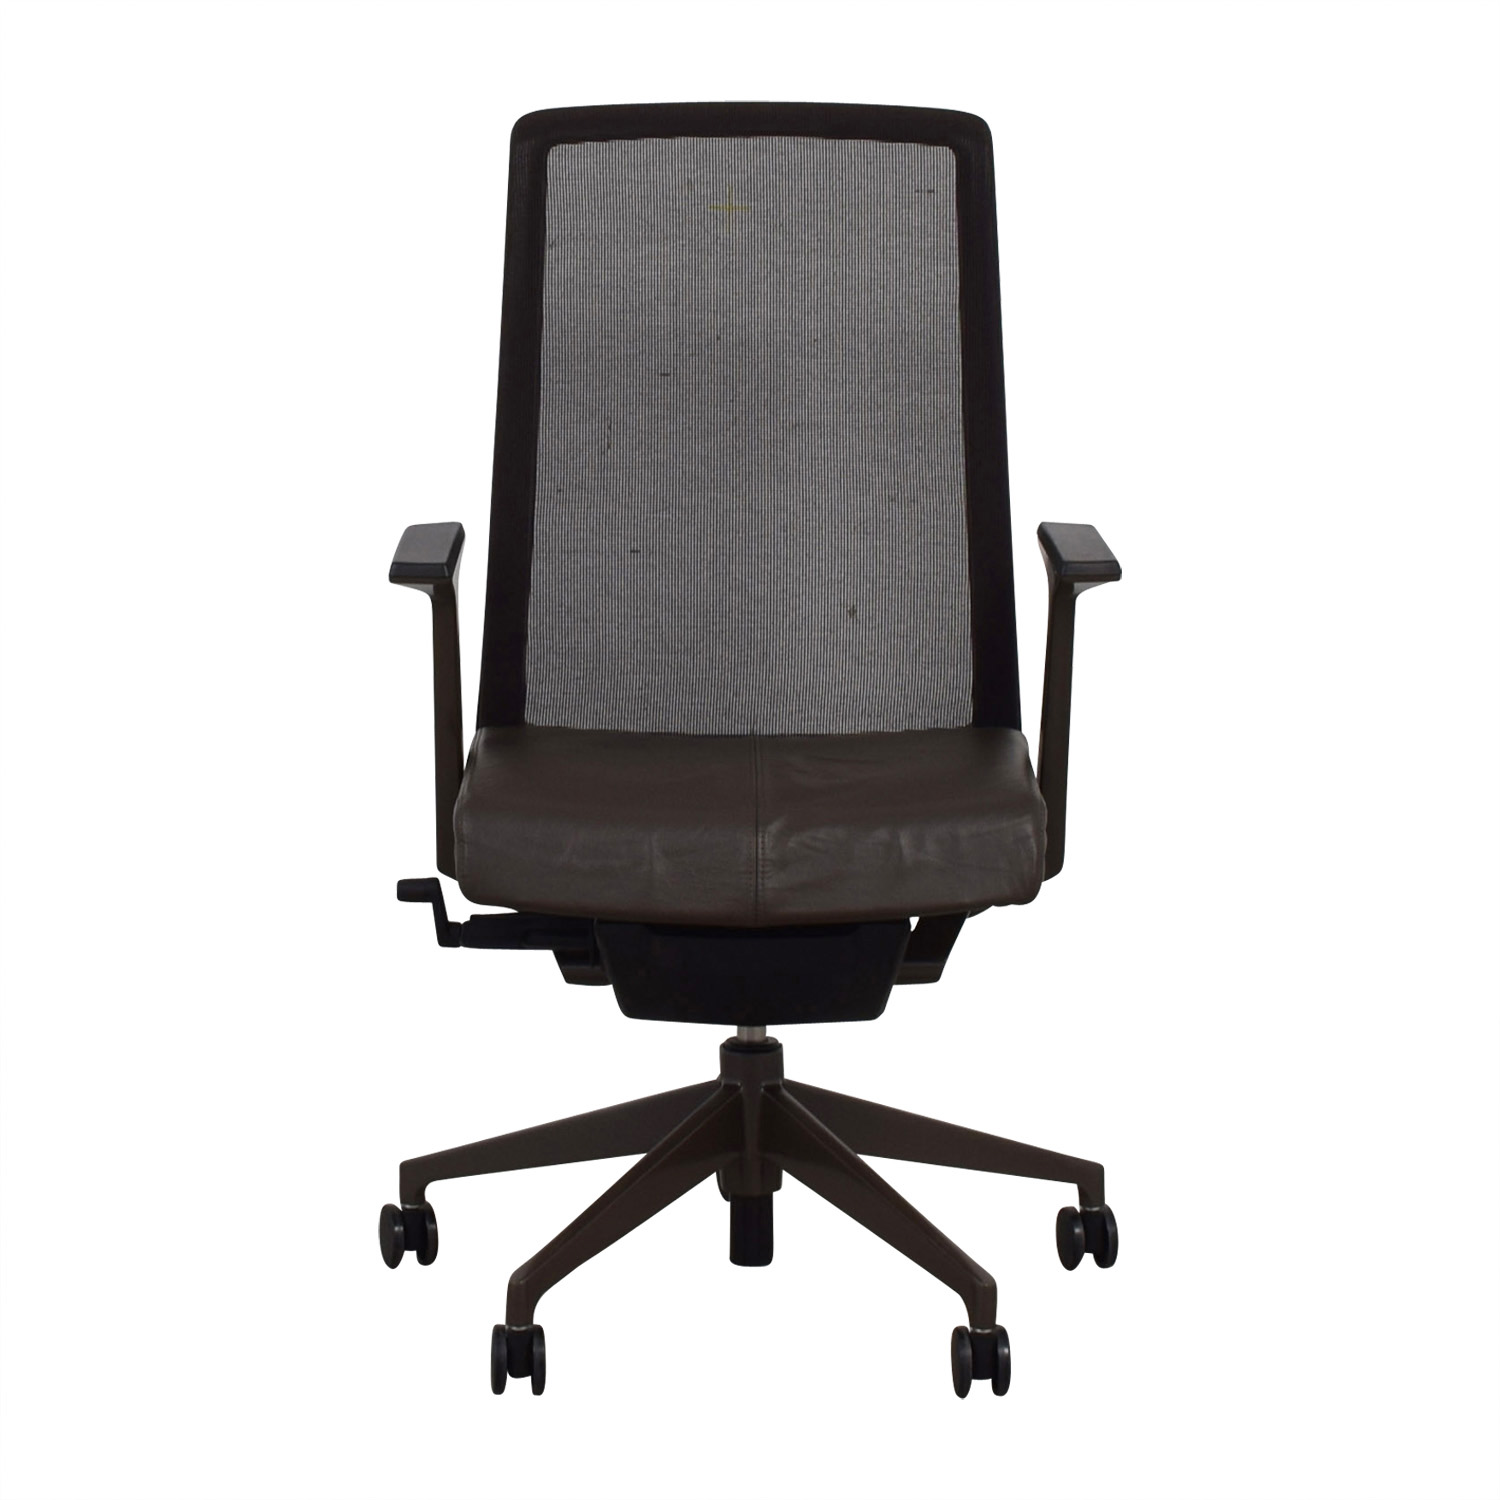 buy Crate & Barrel Black and Brown Haworth Very Task Chair Crate & Barrel